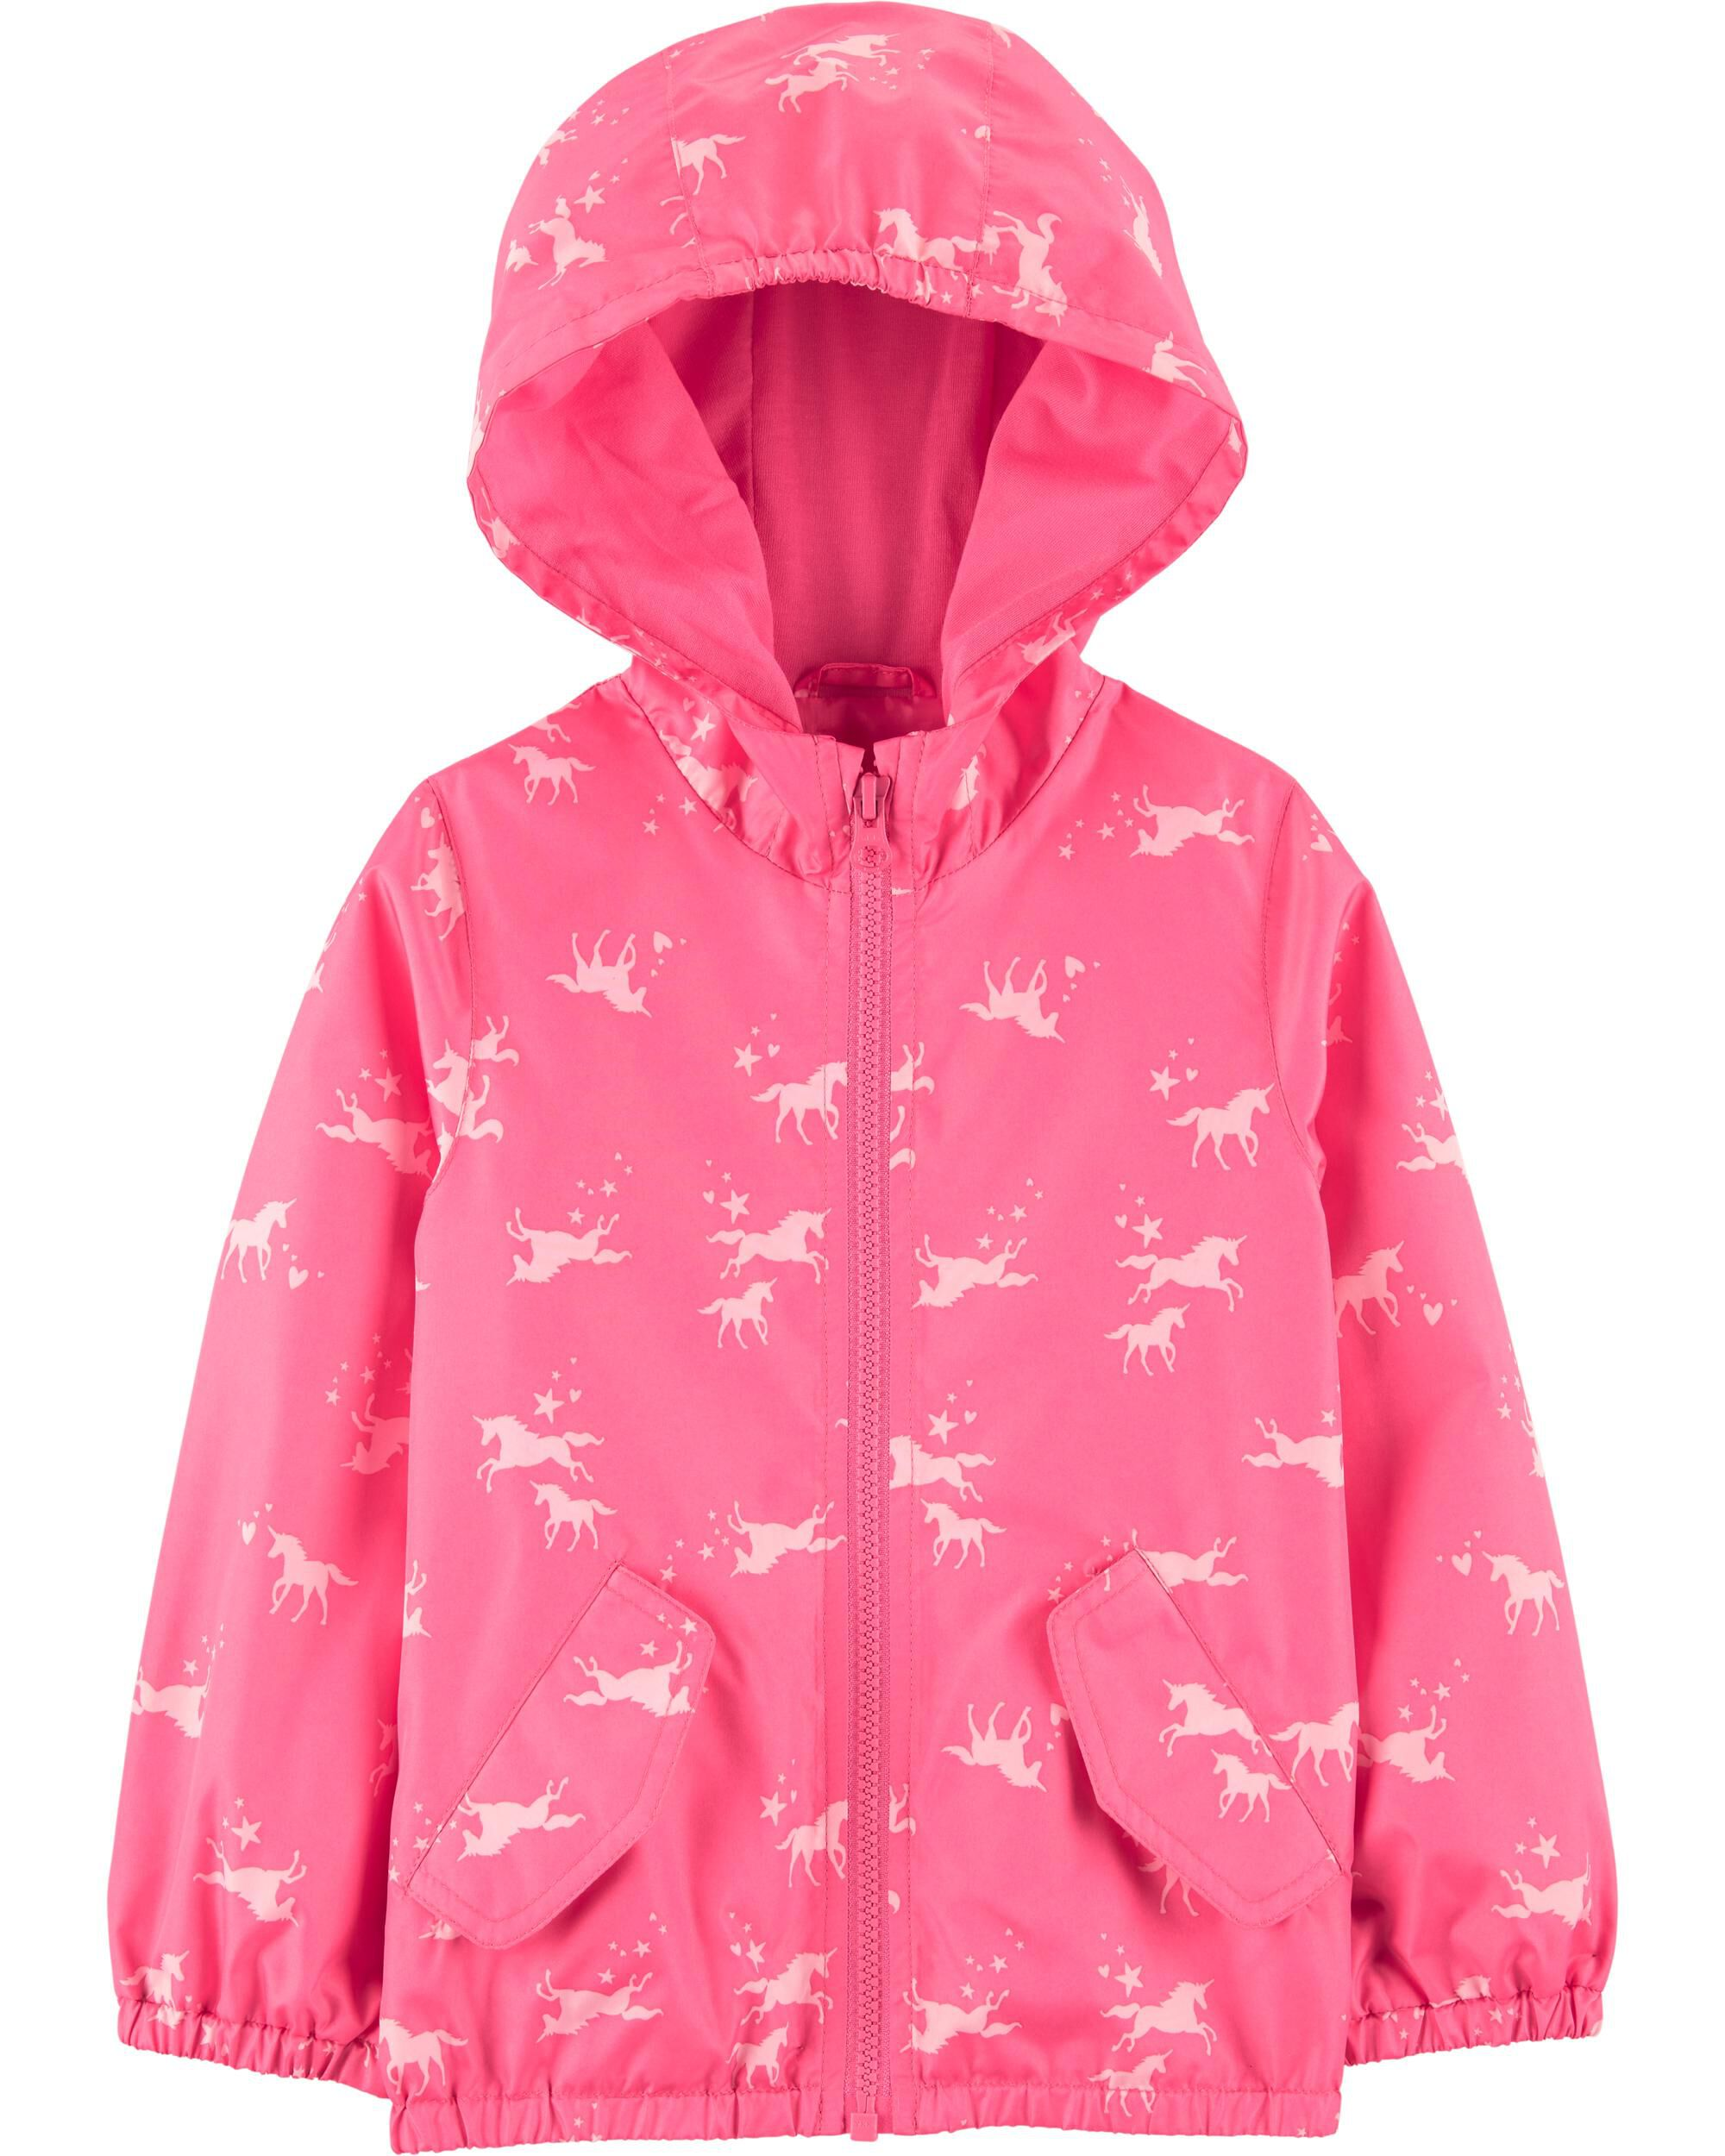 RAINBOWS HOODIE ZIP JACKET OFFICIAL UNIFORM ALL SIZES GIRLS KIDS FREE DELIVERY